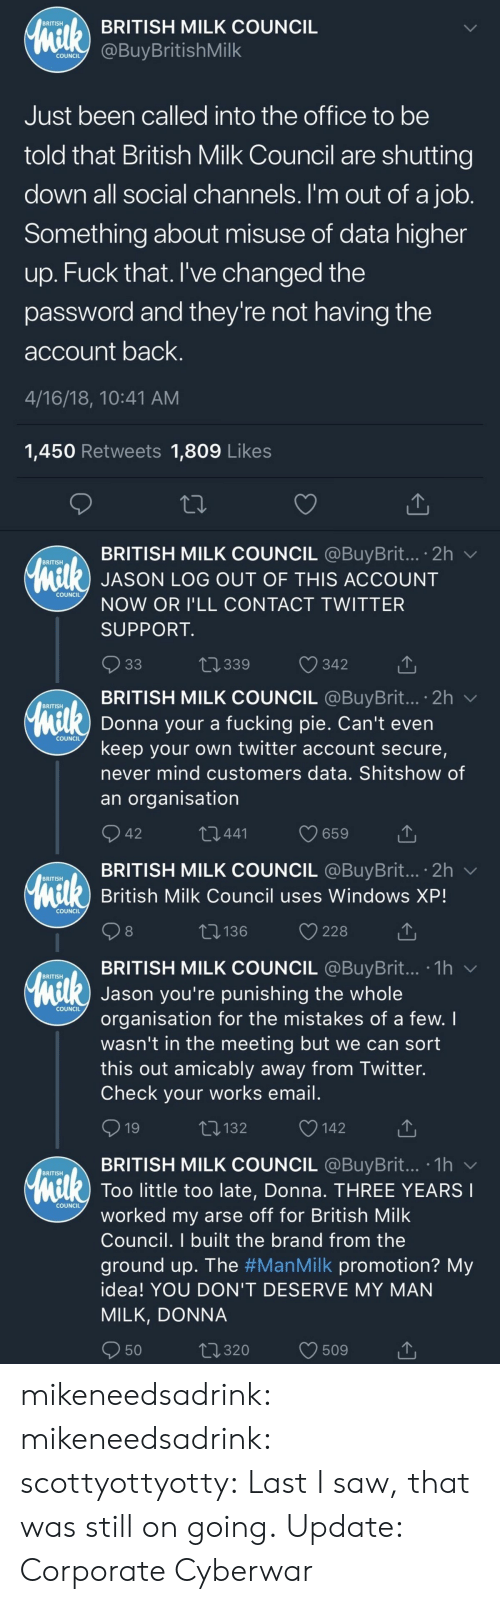 Fucking, Gif, and Saw: BRITISH MILK COUNCIL  BRITISH  COundBuyBritishMilk  COUNCIL  Just been called into the office to be  told that British Milk Council are shutting  down all social channels. I'm out of a job  Something about misuse of data higher  up. Fuck that. I've changed the  password and they're not having the  account back  4/16/18, 10:41 AM  1,450 Retweets 1,809 Like:s  BRITISH MILK COUNCIL @BuyBrit...。2h ﹀  BRITISH  l) JASON LOG OUT OF THIS ACCOUNT  COUNCIL  NOW OR I'LL CONTACT TWITTER  SUPPORT  t 339  342   . BRITISH MILK COUNCIL @BuyBrit...。2h ﹀  BRITISH  Donna your a fucking pie. Can't even  keep your own twitter account secure,  never mind customers data. Shitshow of  an organisation  COUNCIL  42  441  BRITISH MILK COUNCIL @BuyBrit... 2h v  British Milk Council uses Windows XP!  BRITISH  COUNCIL  8  t: 136  228  TBRITISH MILK COUNCIL @BuyBrit... .1hv  BRITISH  Jason you're punishing the whole  organisation for the mistakes of a few. I  wasn't in the meeting but we can sort  this out amicably away from Twitter.  Check your works email  COUNCIL  132  142  BRITISH MILK COUNCIL @BuyBrit...-1h  BRITISH  Too little too late, Donna. THREE YEARS  COUNCIL  worked my arse off for British Milk  Council. I built the brand from the  ground up. The #ManMilk promotion? My  idea! YOU DON'T DESERVE MY MAN  MILK, DONNA  50  320  509 mikeneedsadrink: mikeneedsadrink:  scottyottyotty:  Last I saw, that was still on going.  Update: Corporate Cyberwar